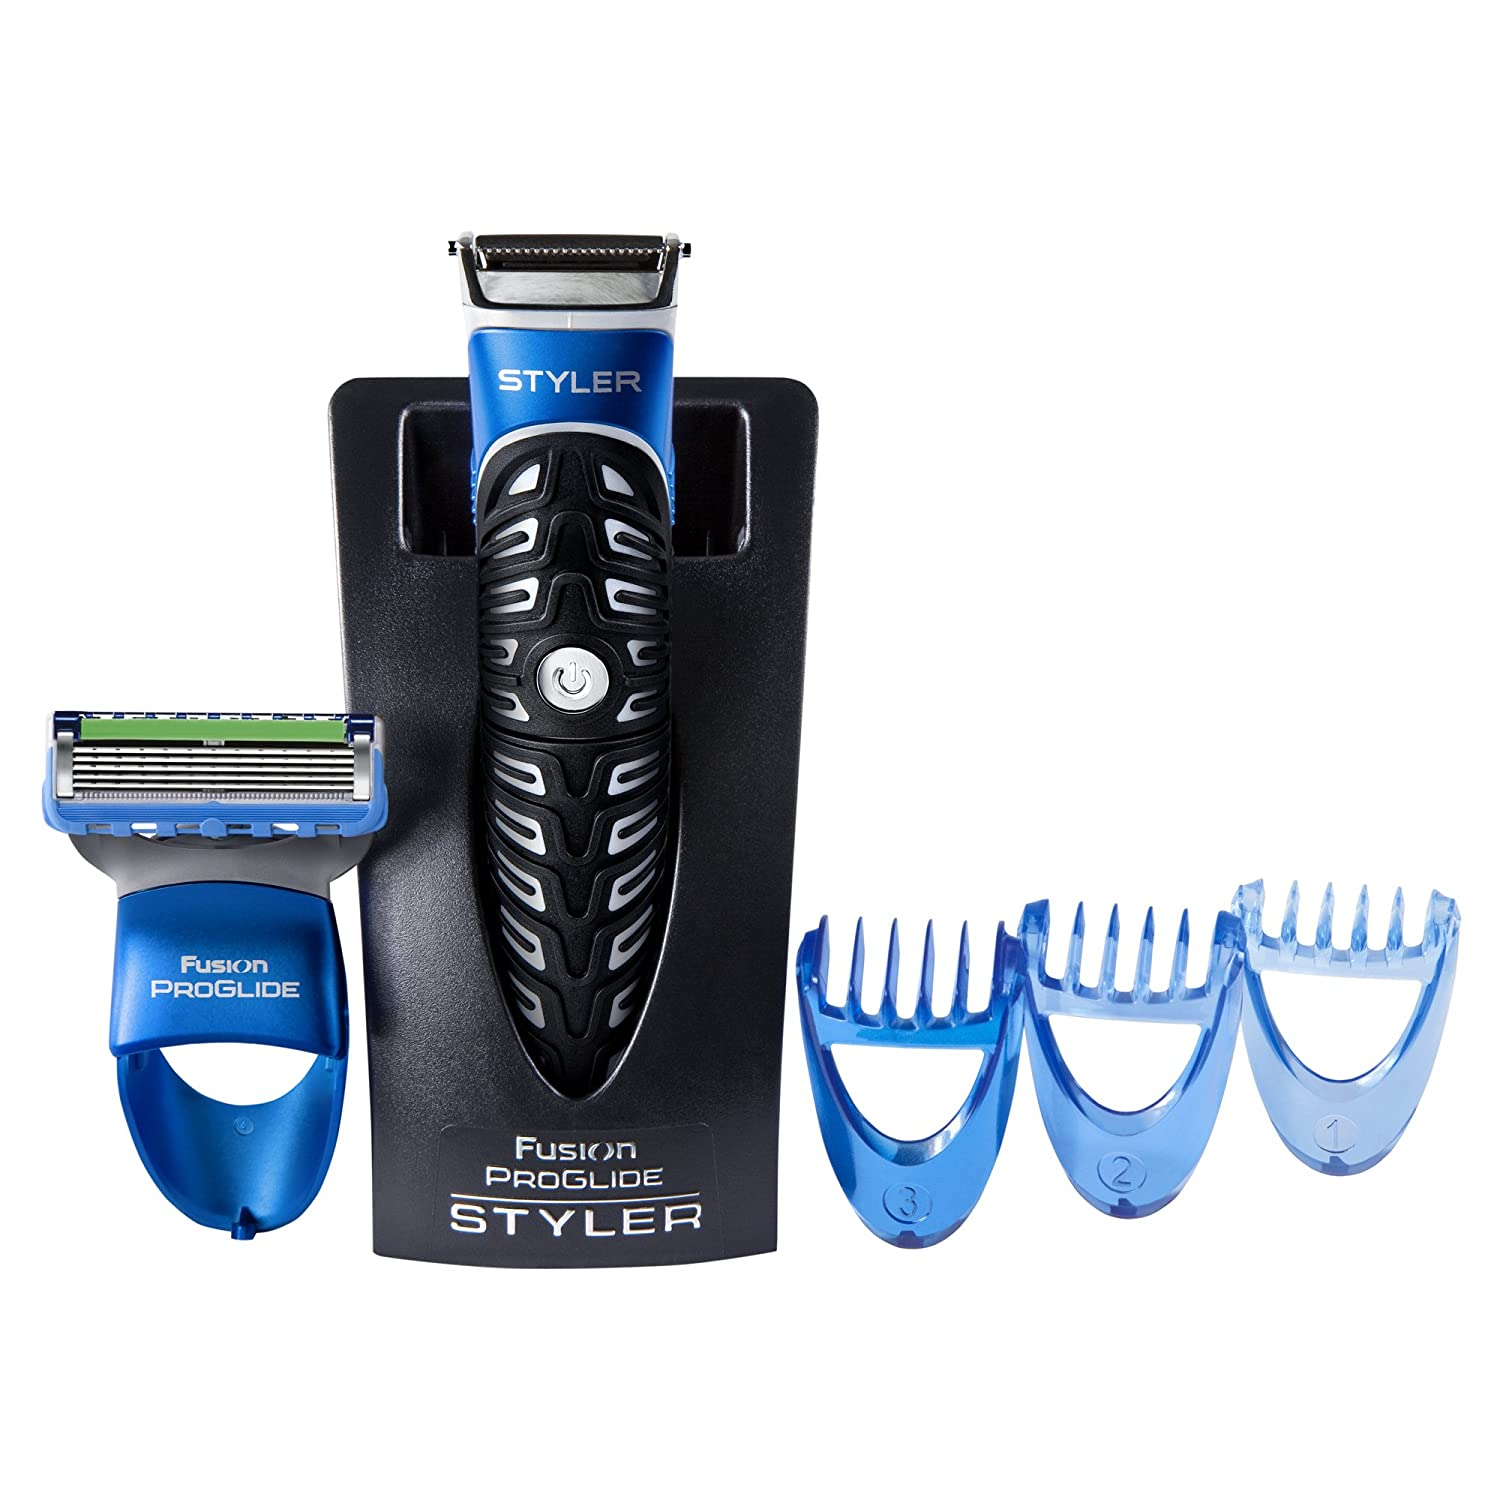 Gillette Fusion ProGlide 3-in-1 Razor Best Body Groomers